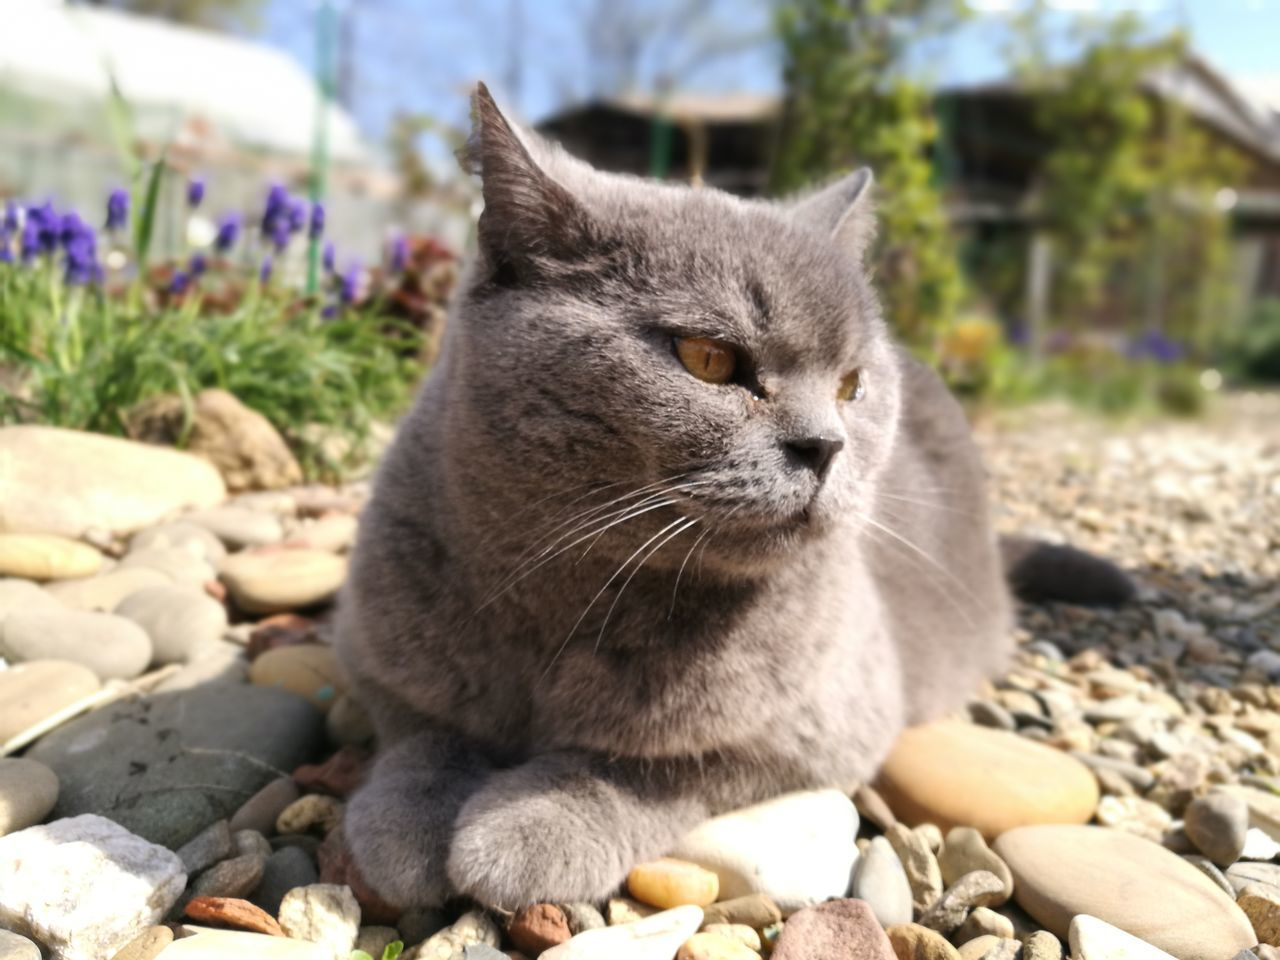 domestic cat, animal themes, one animal, feline, mammal, domestic animals, whisker, pets, focus on foreground, day, sitting, outdoors, rock - object, looking at camera, no people, sunlight, close-up, portrait, relaxation, nature